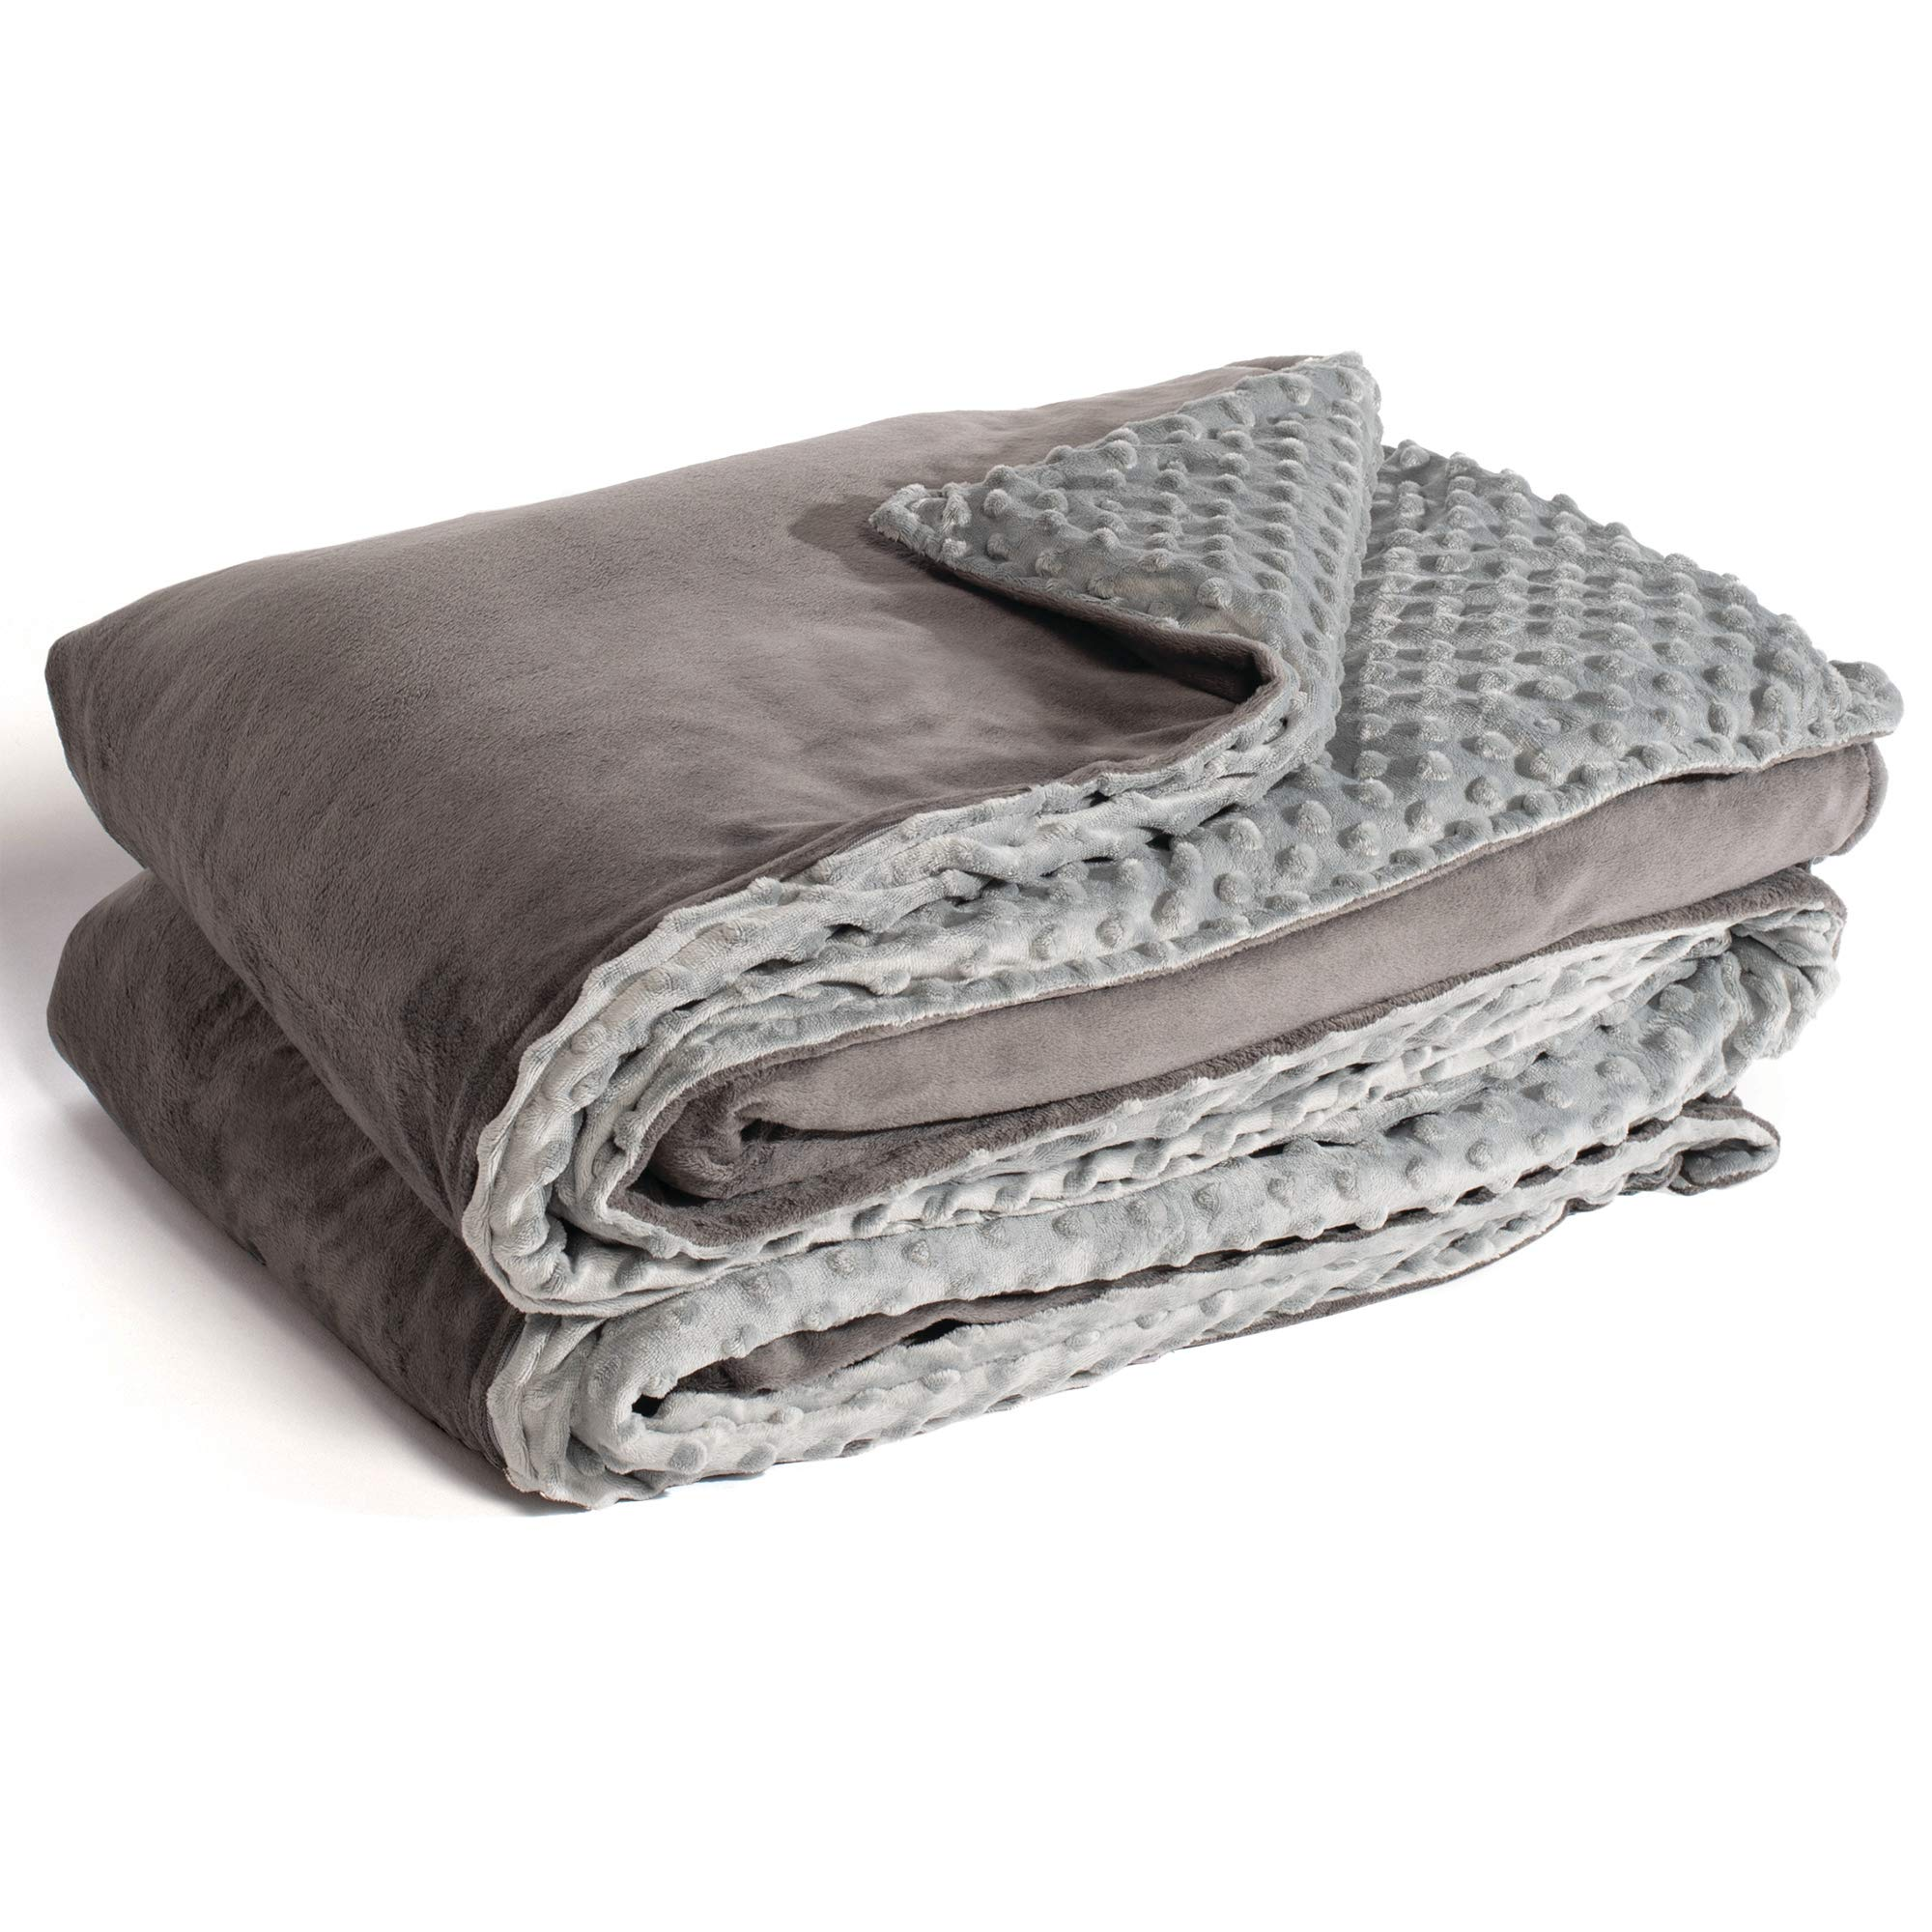 Marpac Yogasleep Premium Weighted Blanket & Removable Cover. 12 Lbs, 48'' X 72'', Charcoal/Light Gray